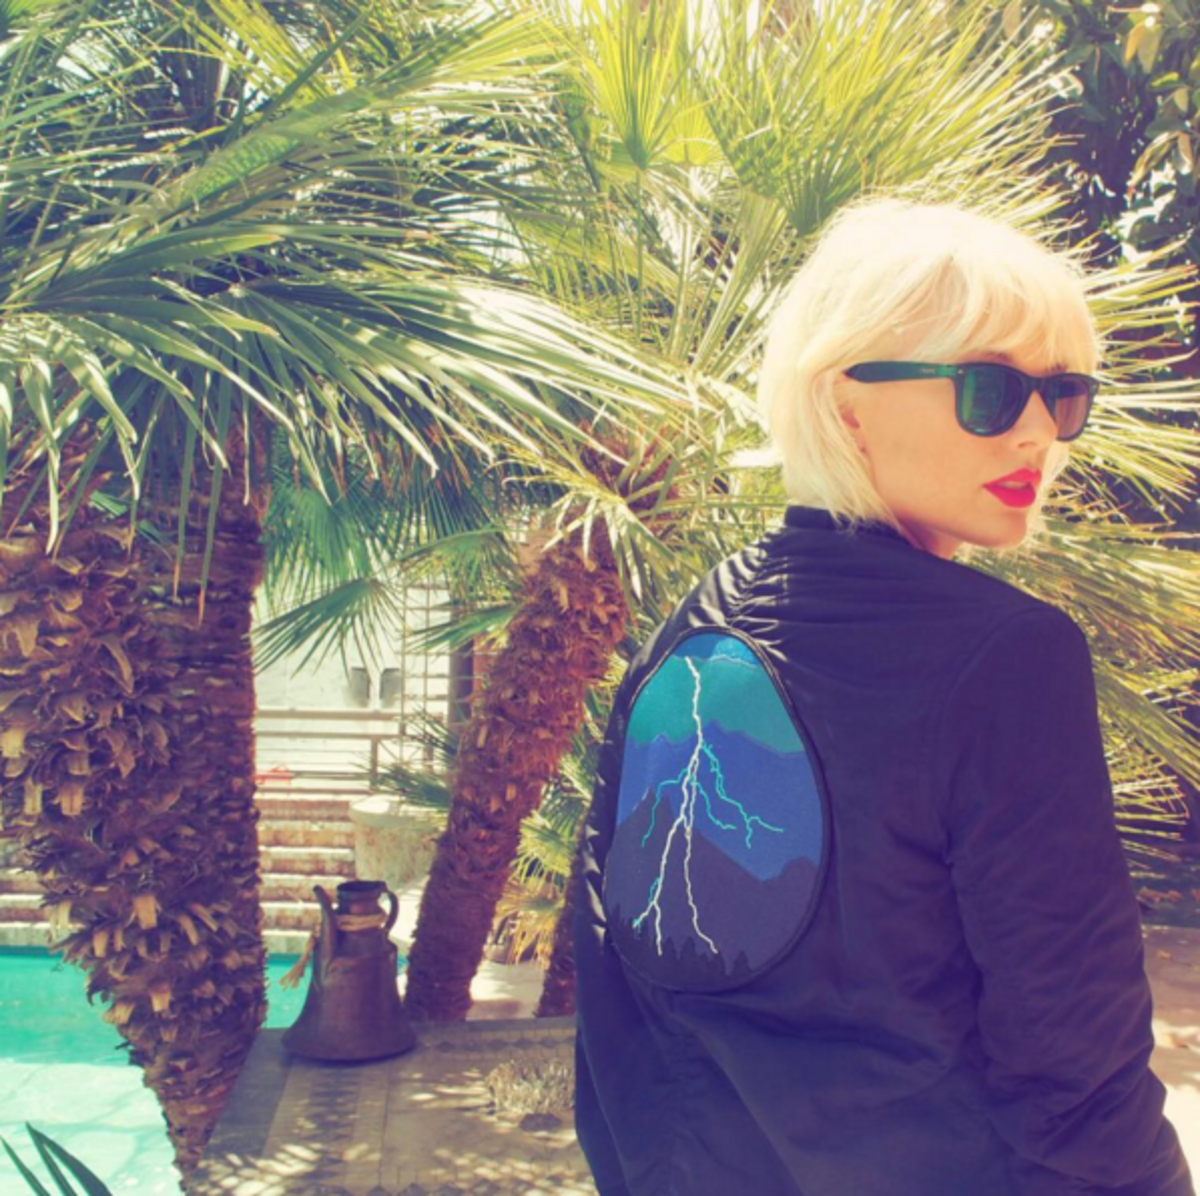 Taylor Swift with freshly bleached hair at Coachella. Photo: Instagram/@taylorswift